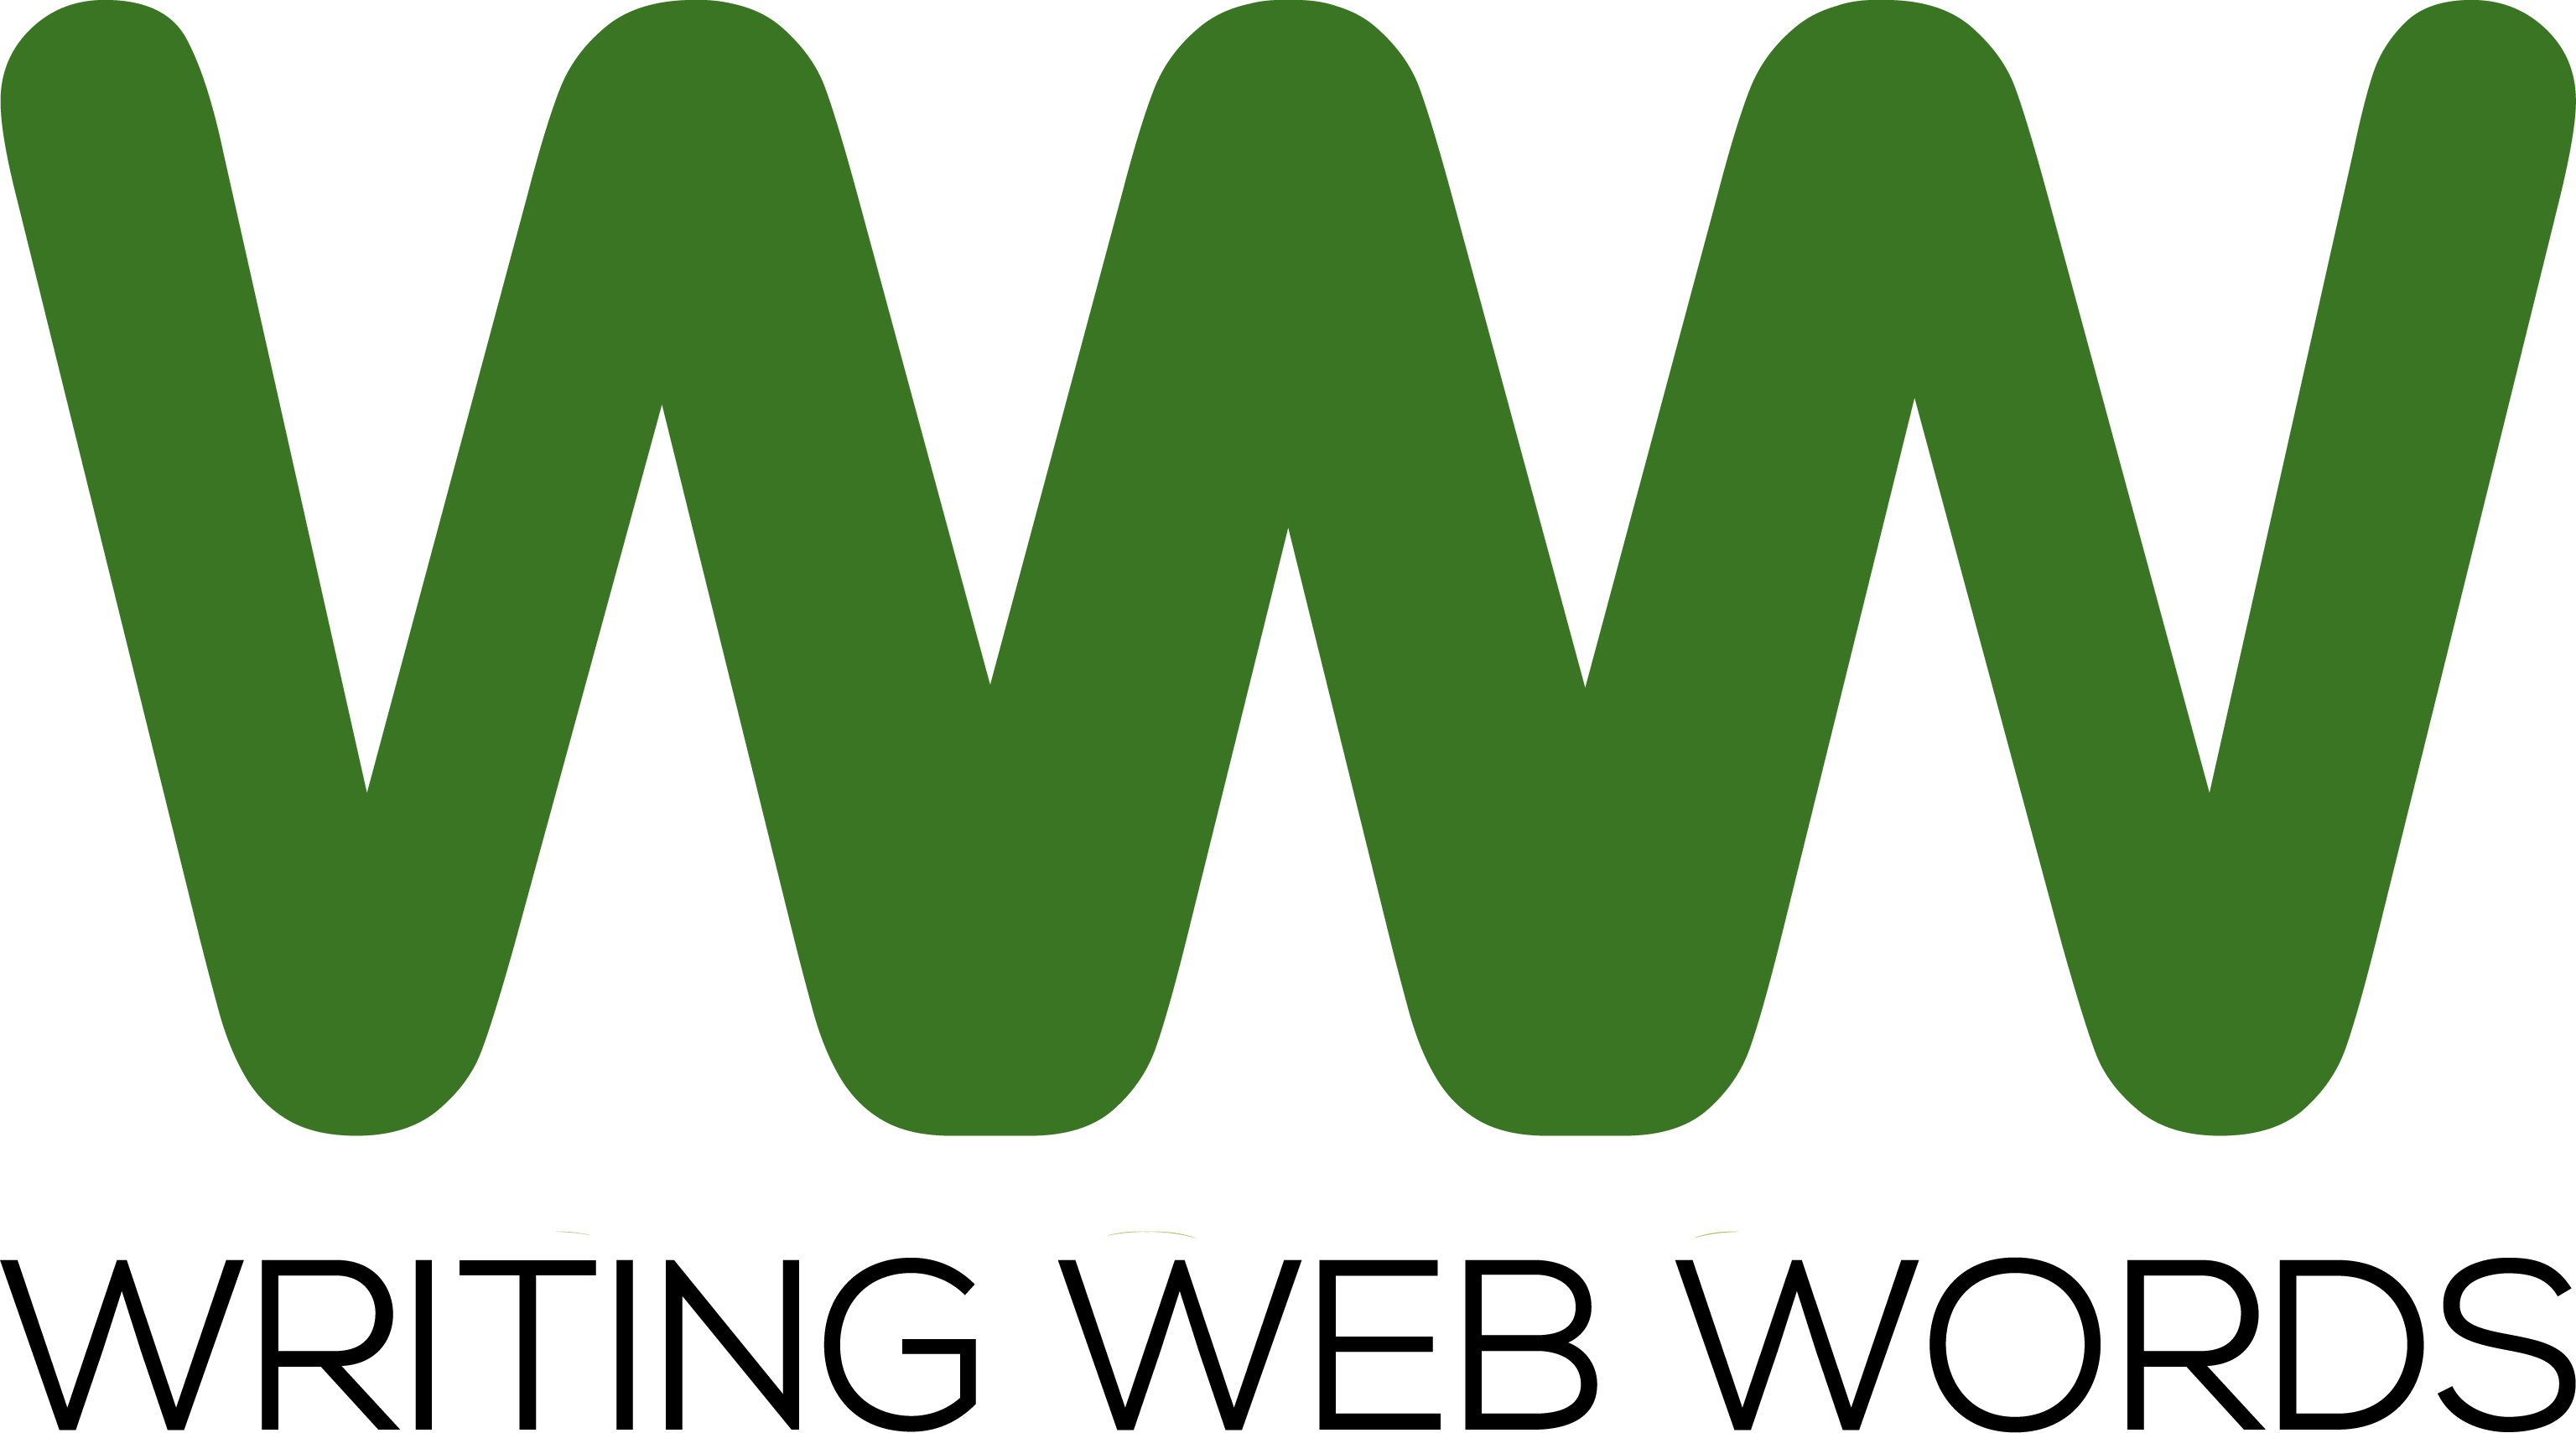 Writing Web Words